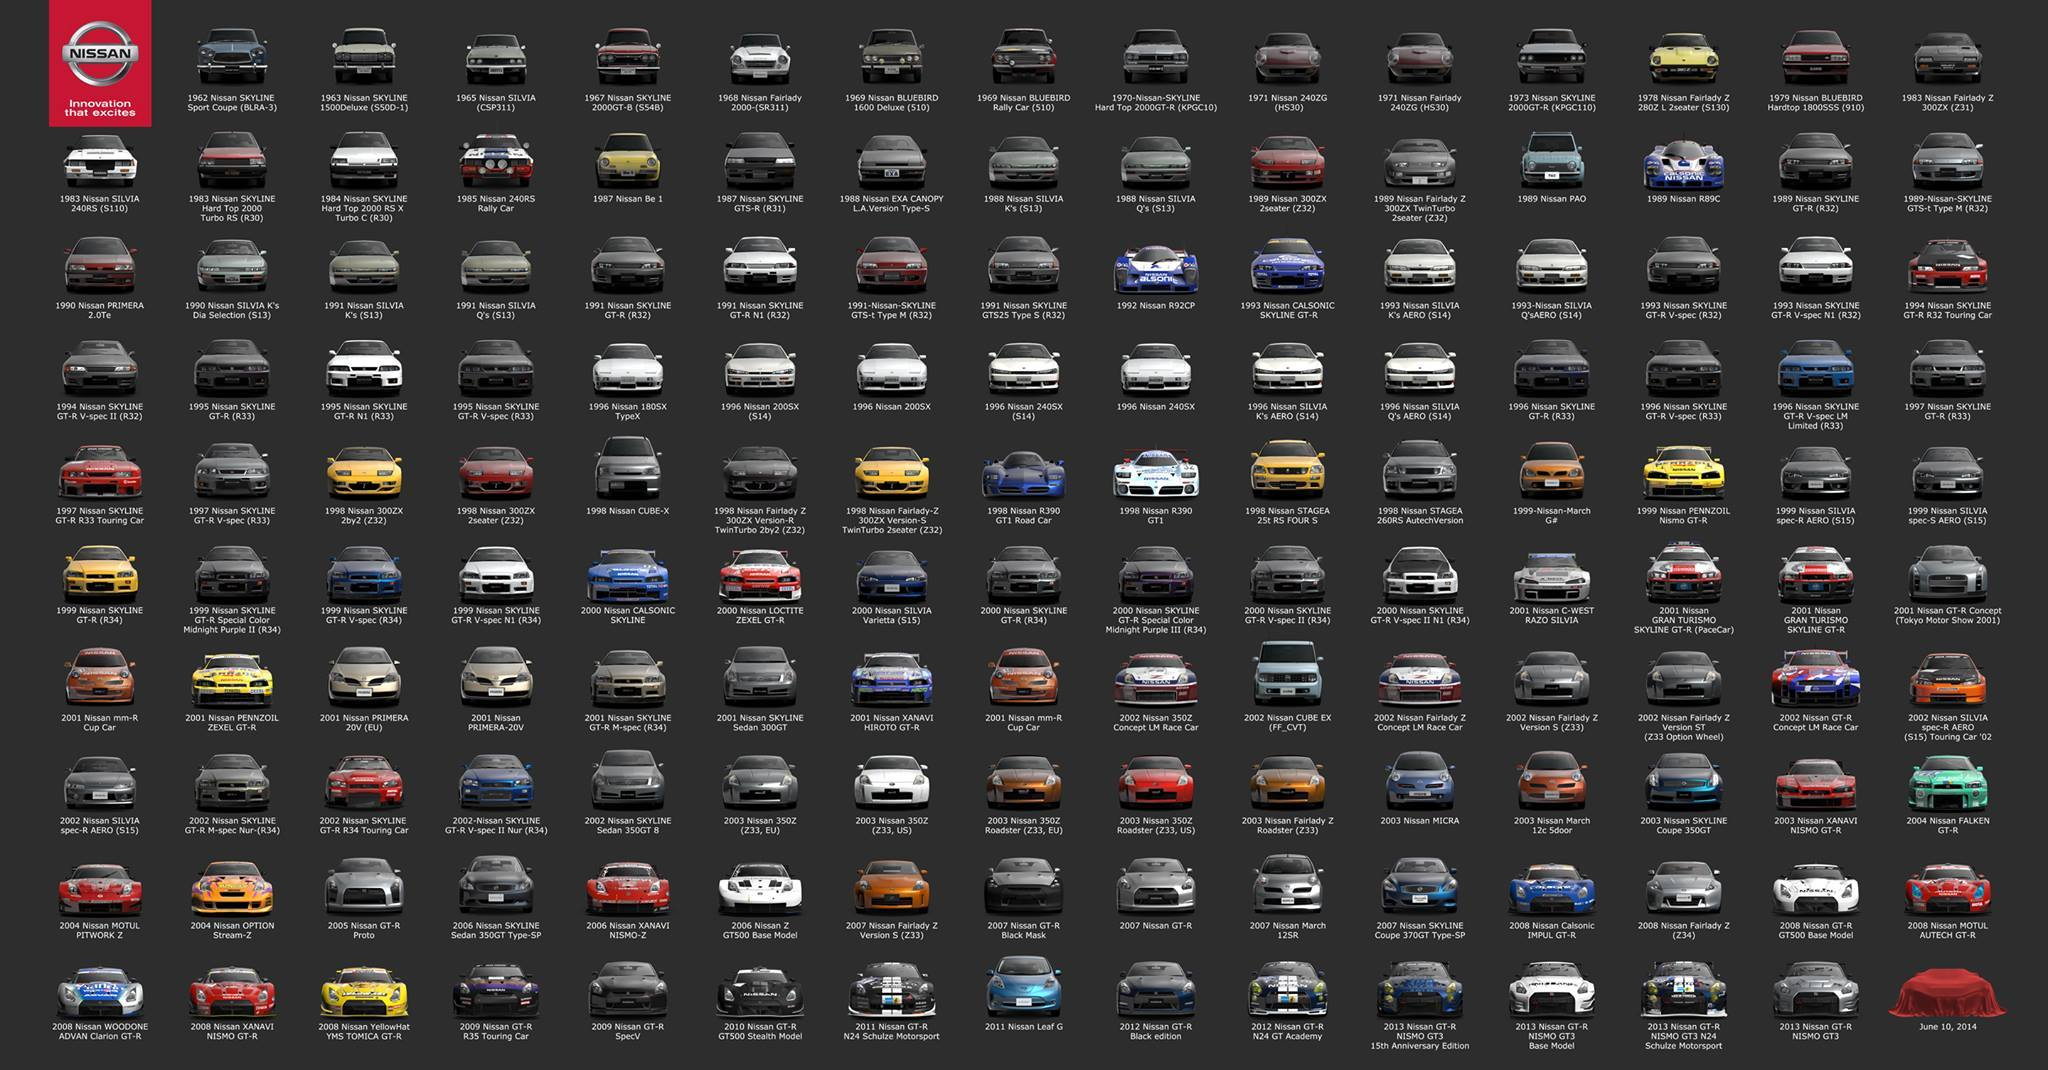 new Nissan is coming to Gran Turismo, according to the latest post